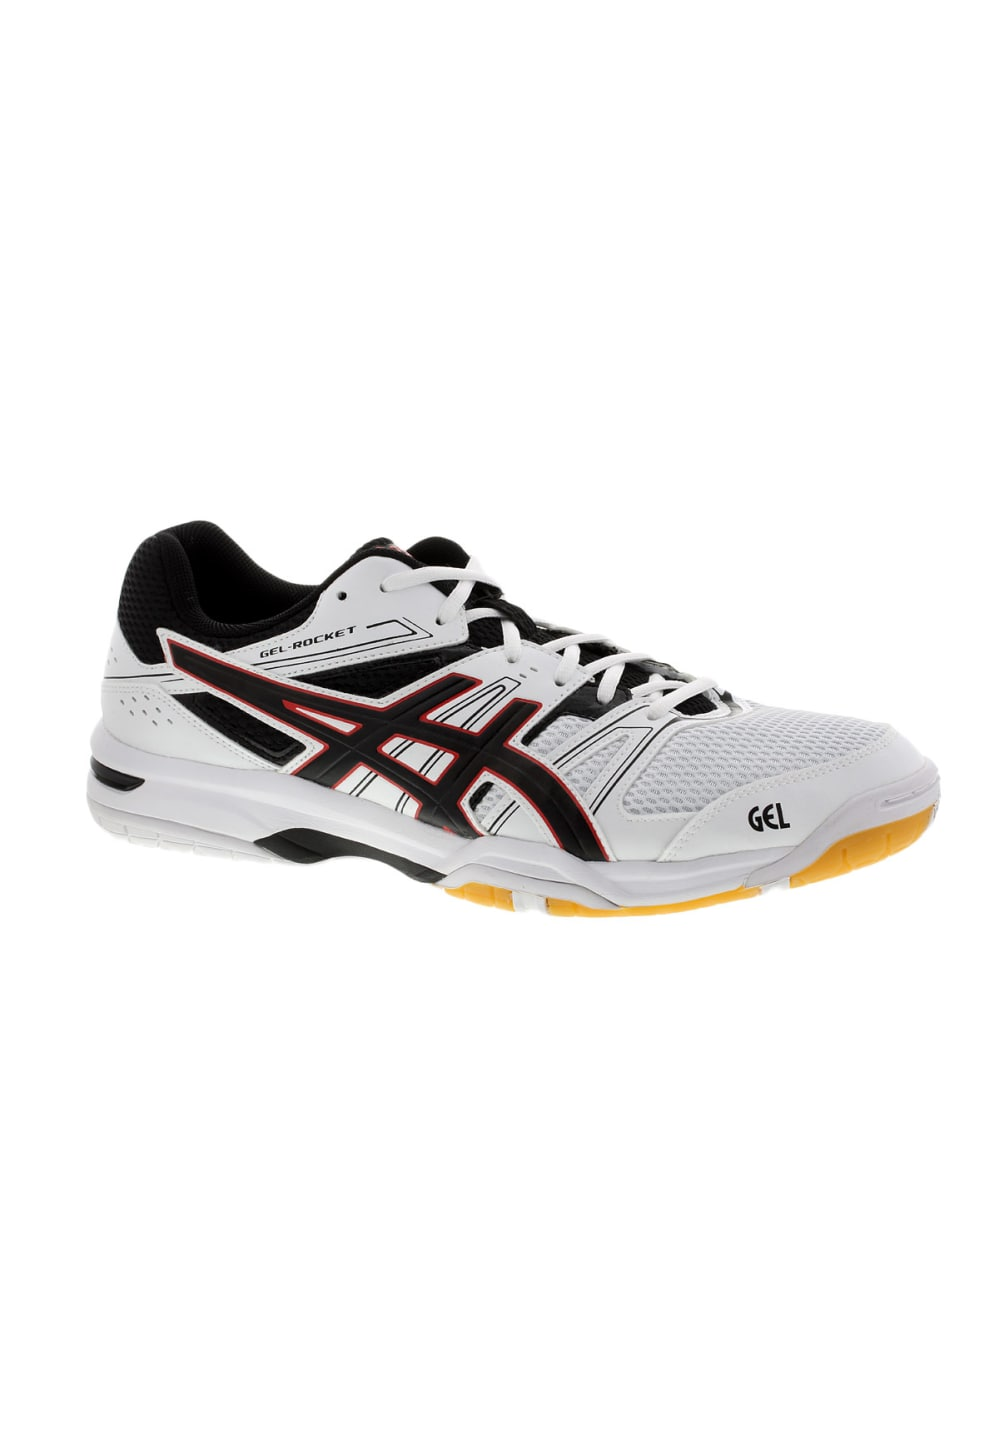 ASICS GEL Rocket 7 Volleyball shoes for Men White